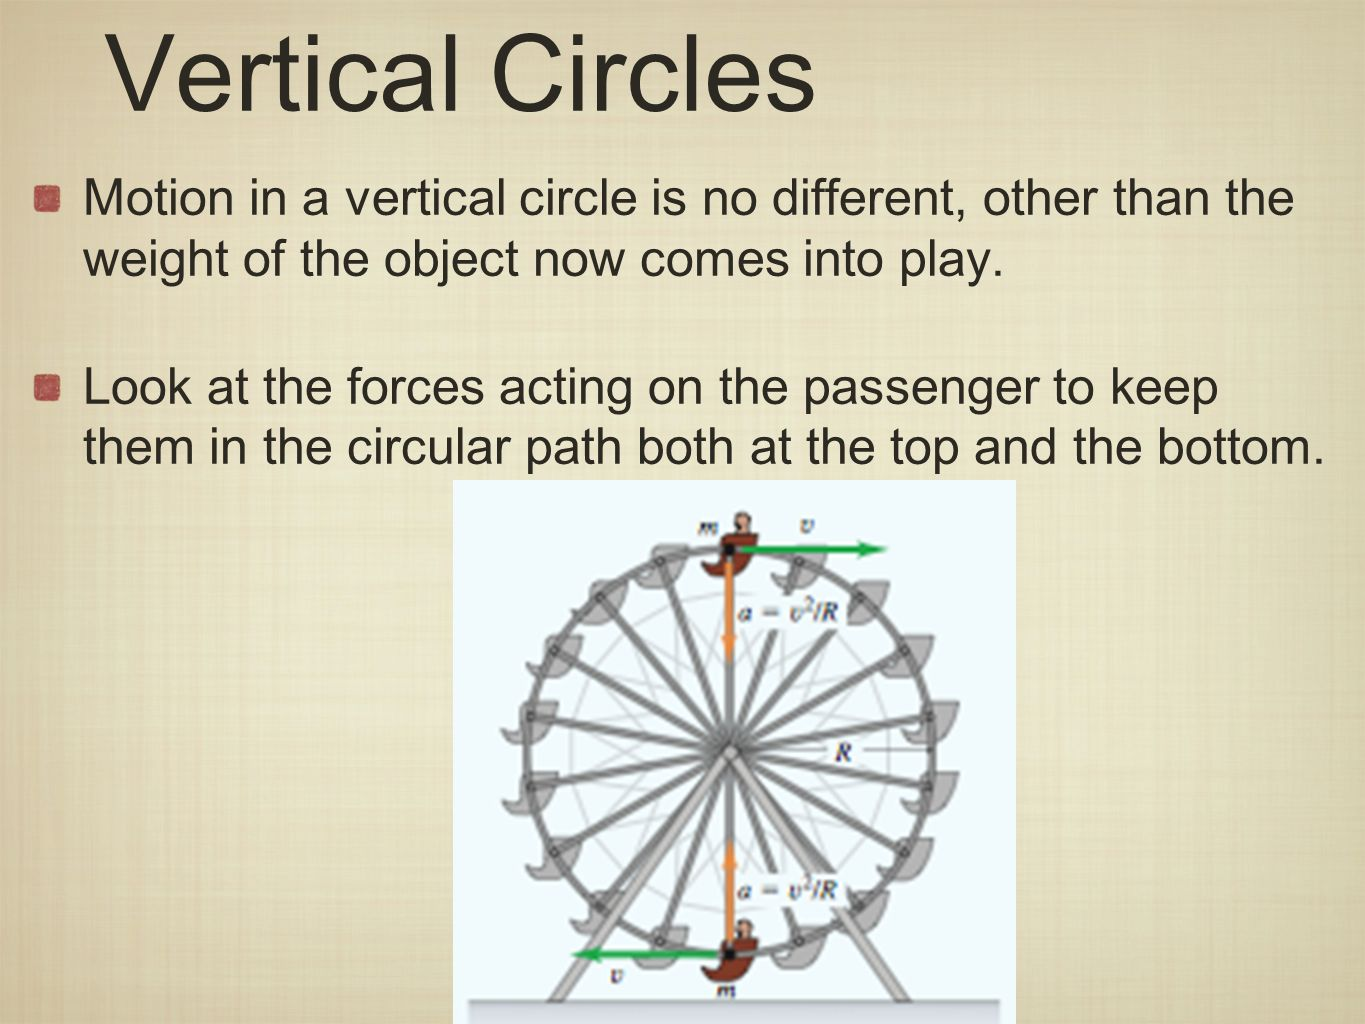 Vertical Circles Motion in a vertical circle is no different, other than the weight of the object now comes into play.